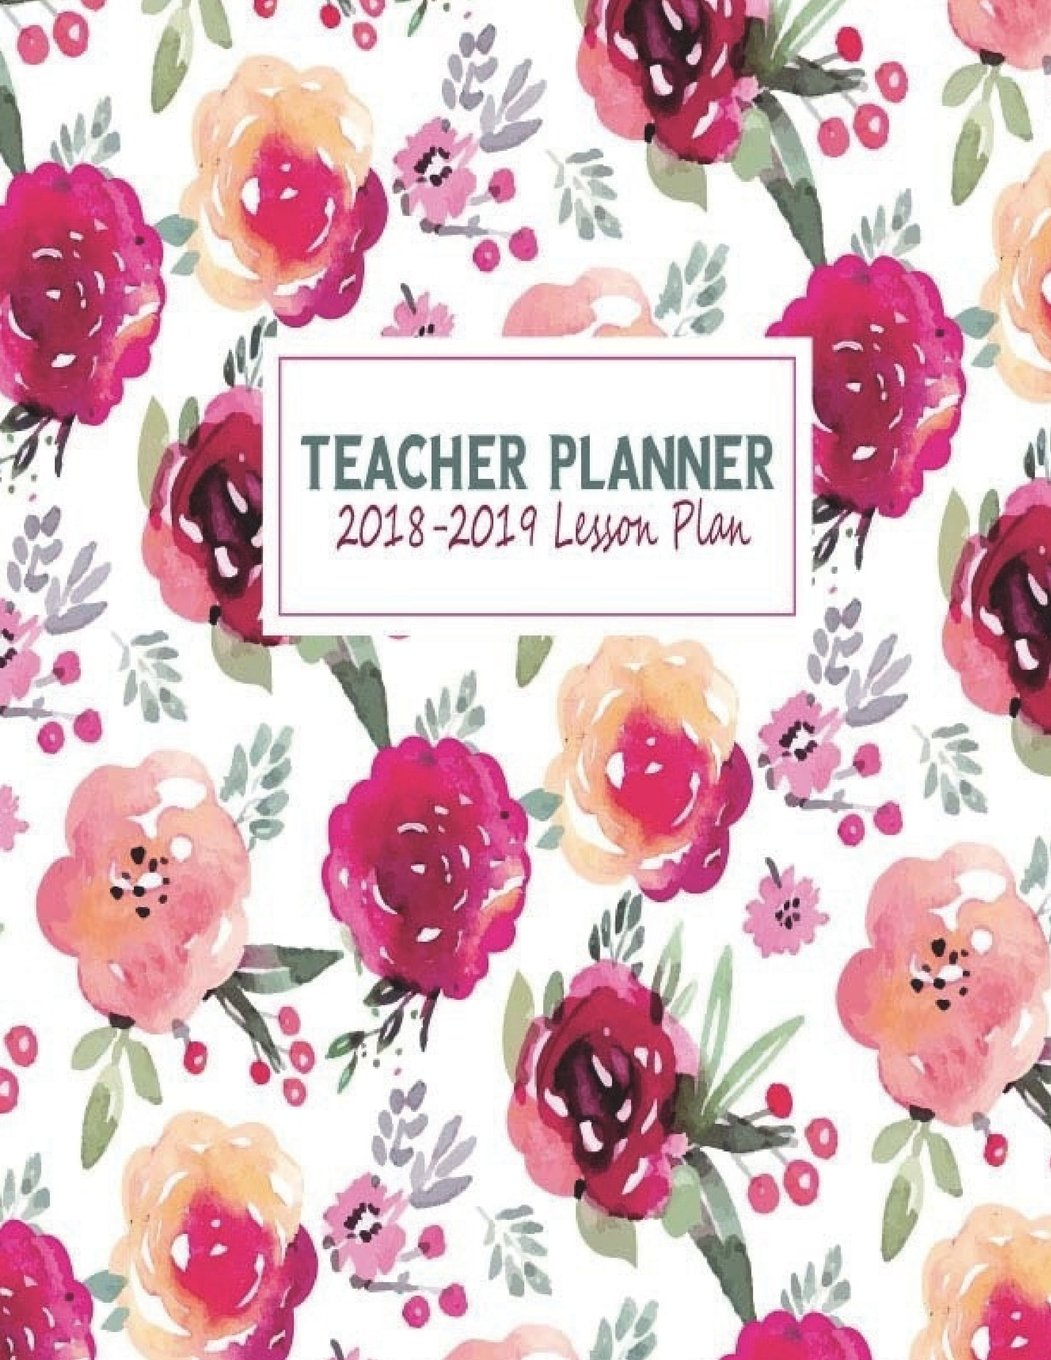 Read Online Teacher Planner 2018-2019 Lesson Plan: My 365 Happy Daily Teacher Planner. Record 7 Subject, Lesson Planner, Monthly, Weekly and Daily Personalized ... Planner Homeschool Gradebook) (Volume 10) PDF